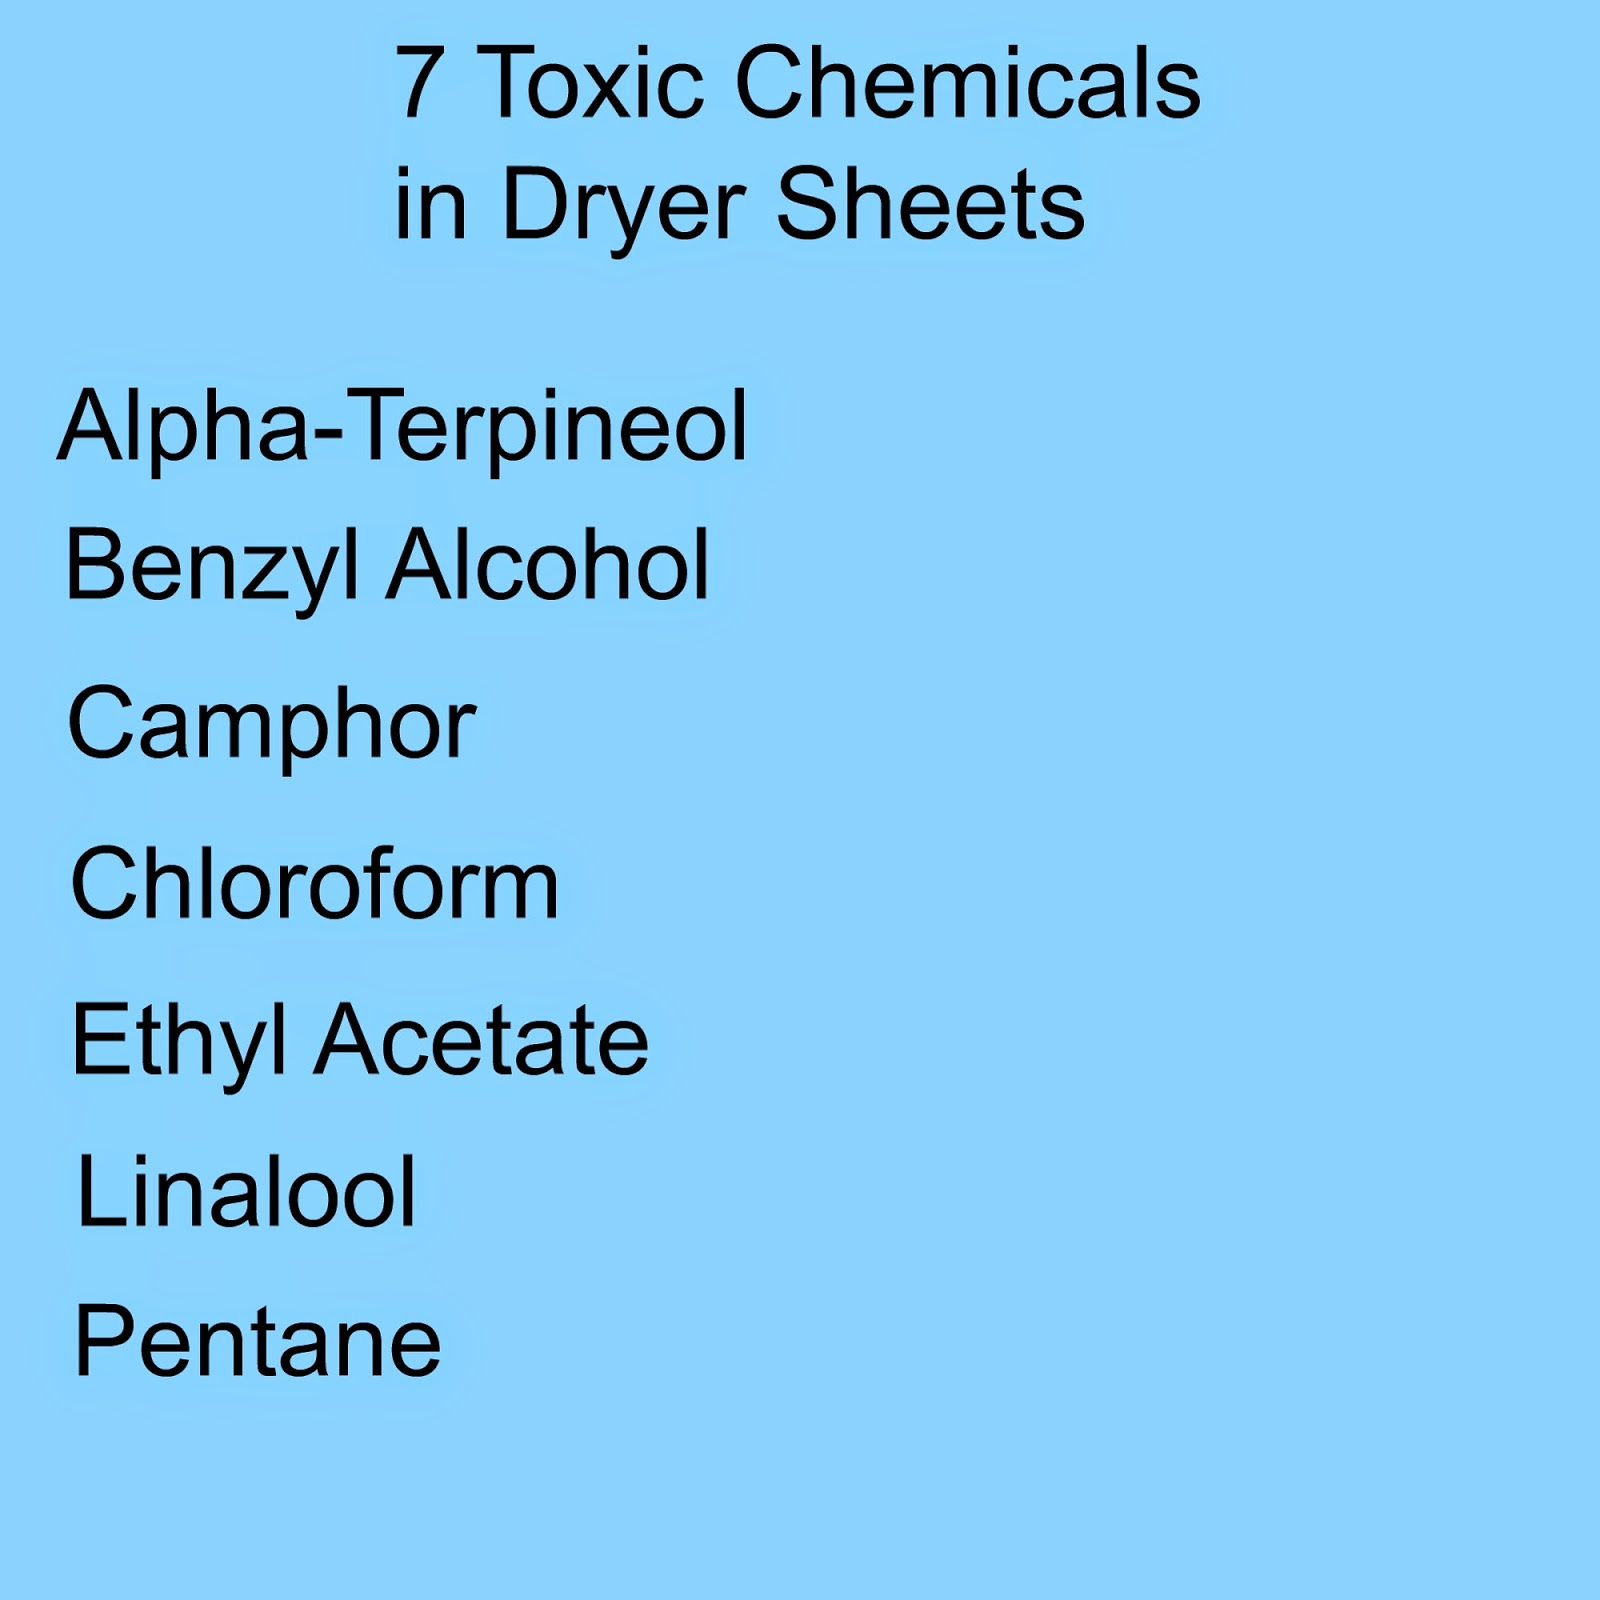 7 toxic chemicals commercial in dryer sheet